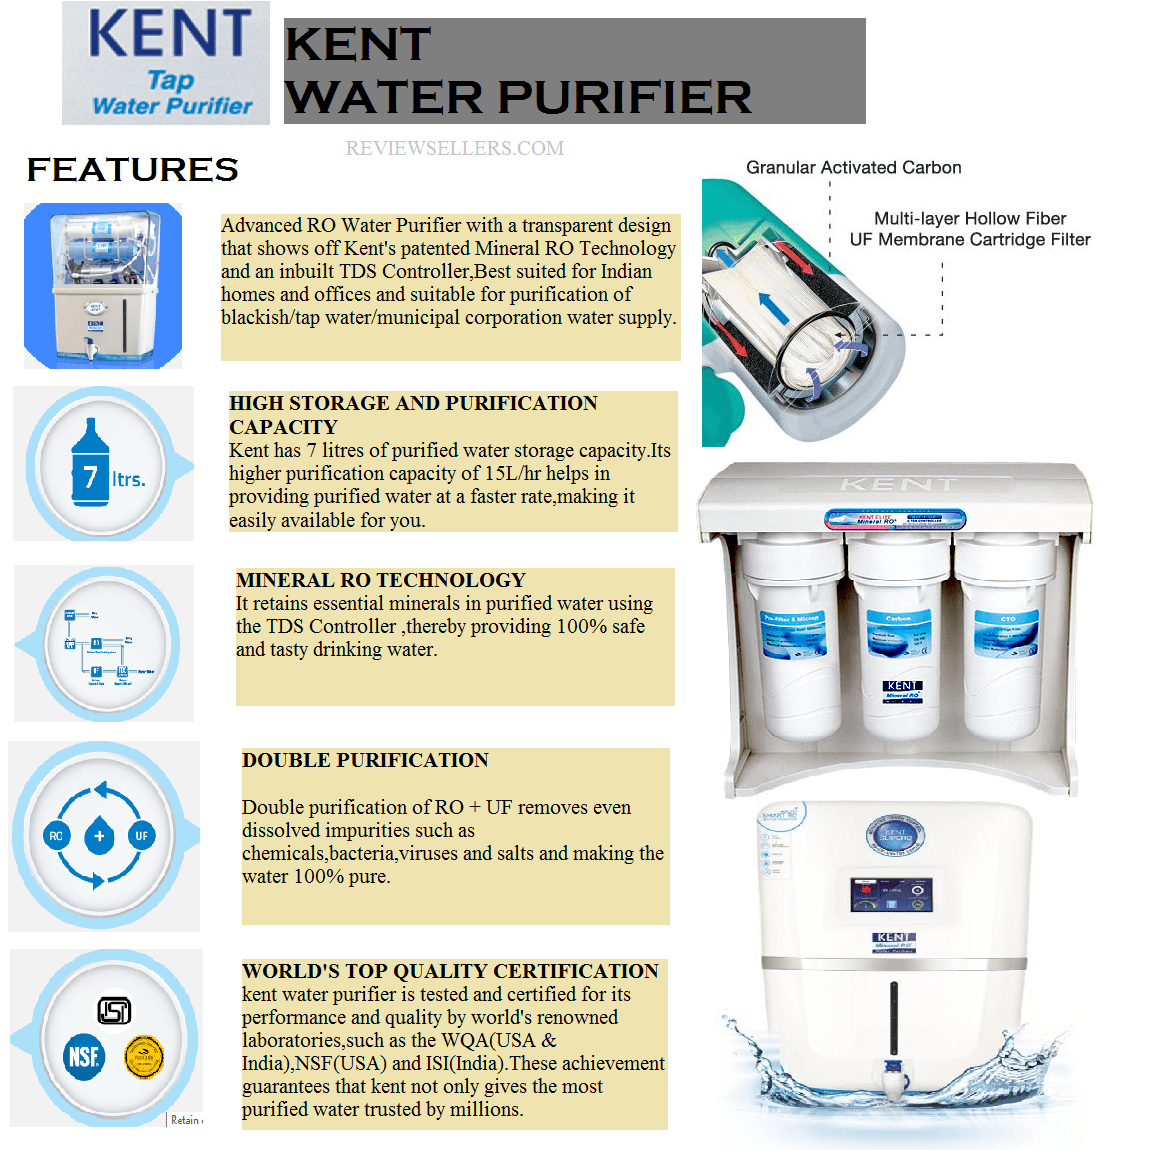 Top 7 Kent Water Purifiers in India 2017 - ReviewSellers